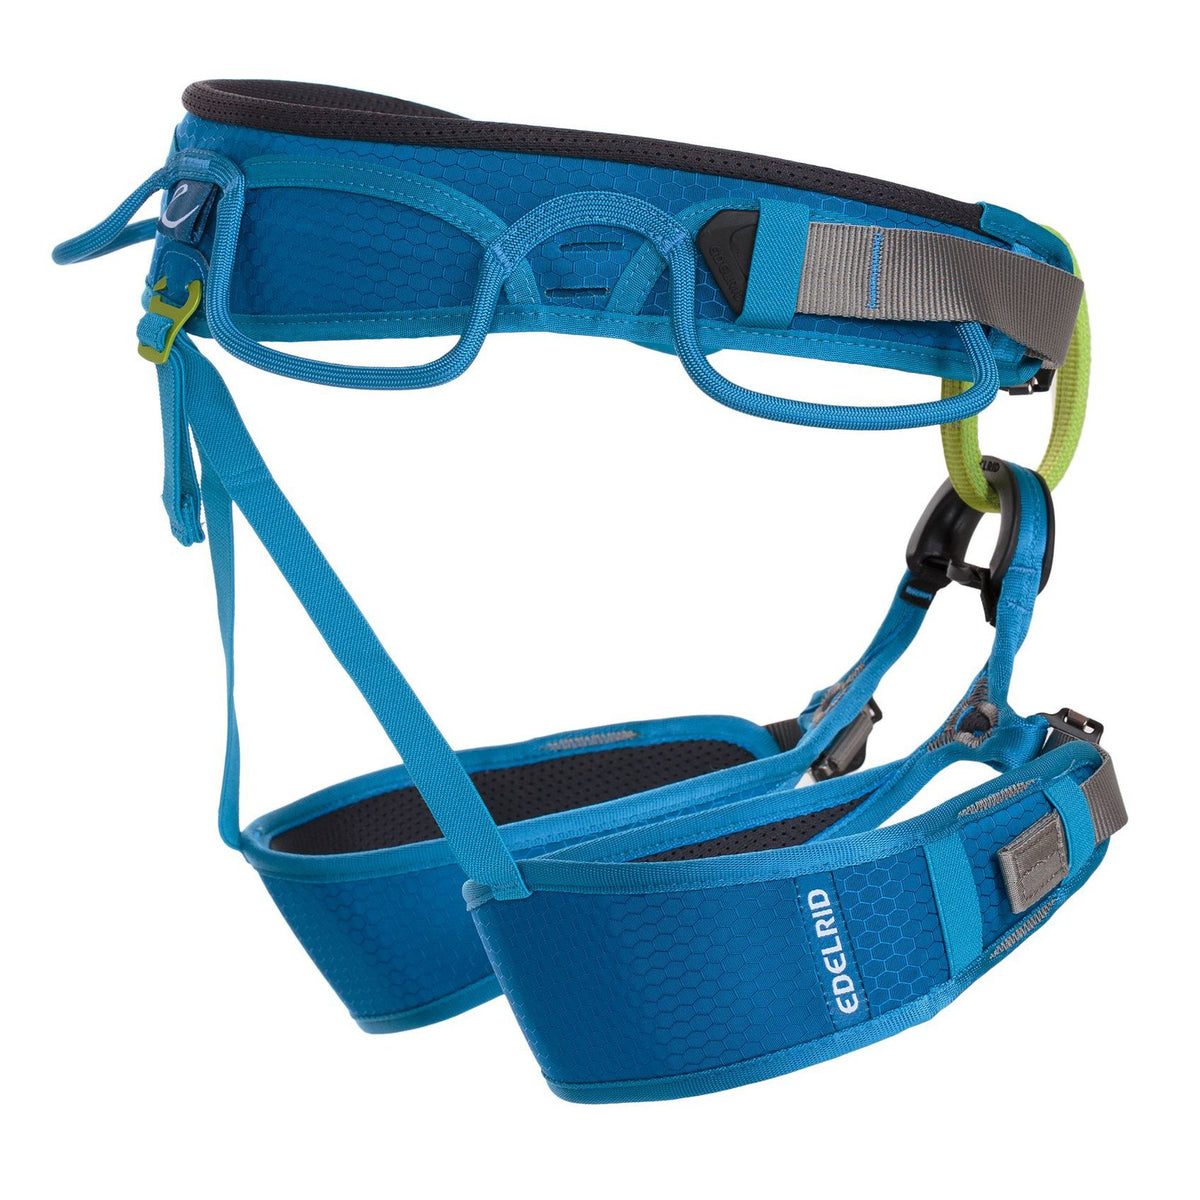 Edelrid Duke II Harness